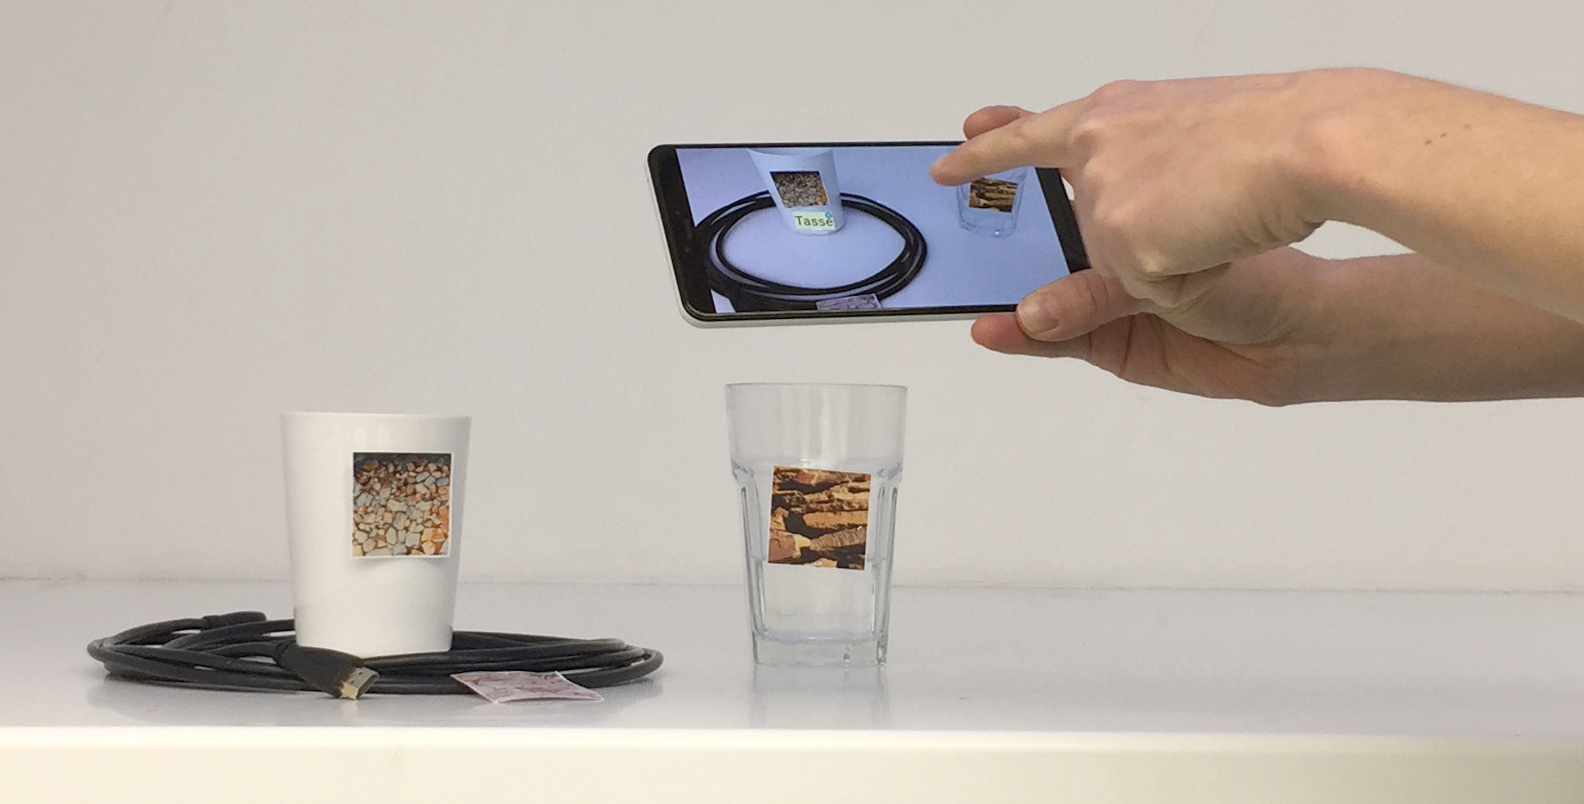 Augmented Reality to Enable Users in Learning Case Grammar from Their Real-World Interactions